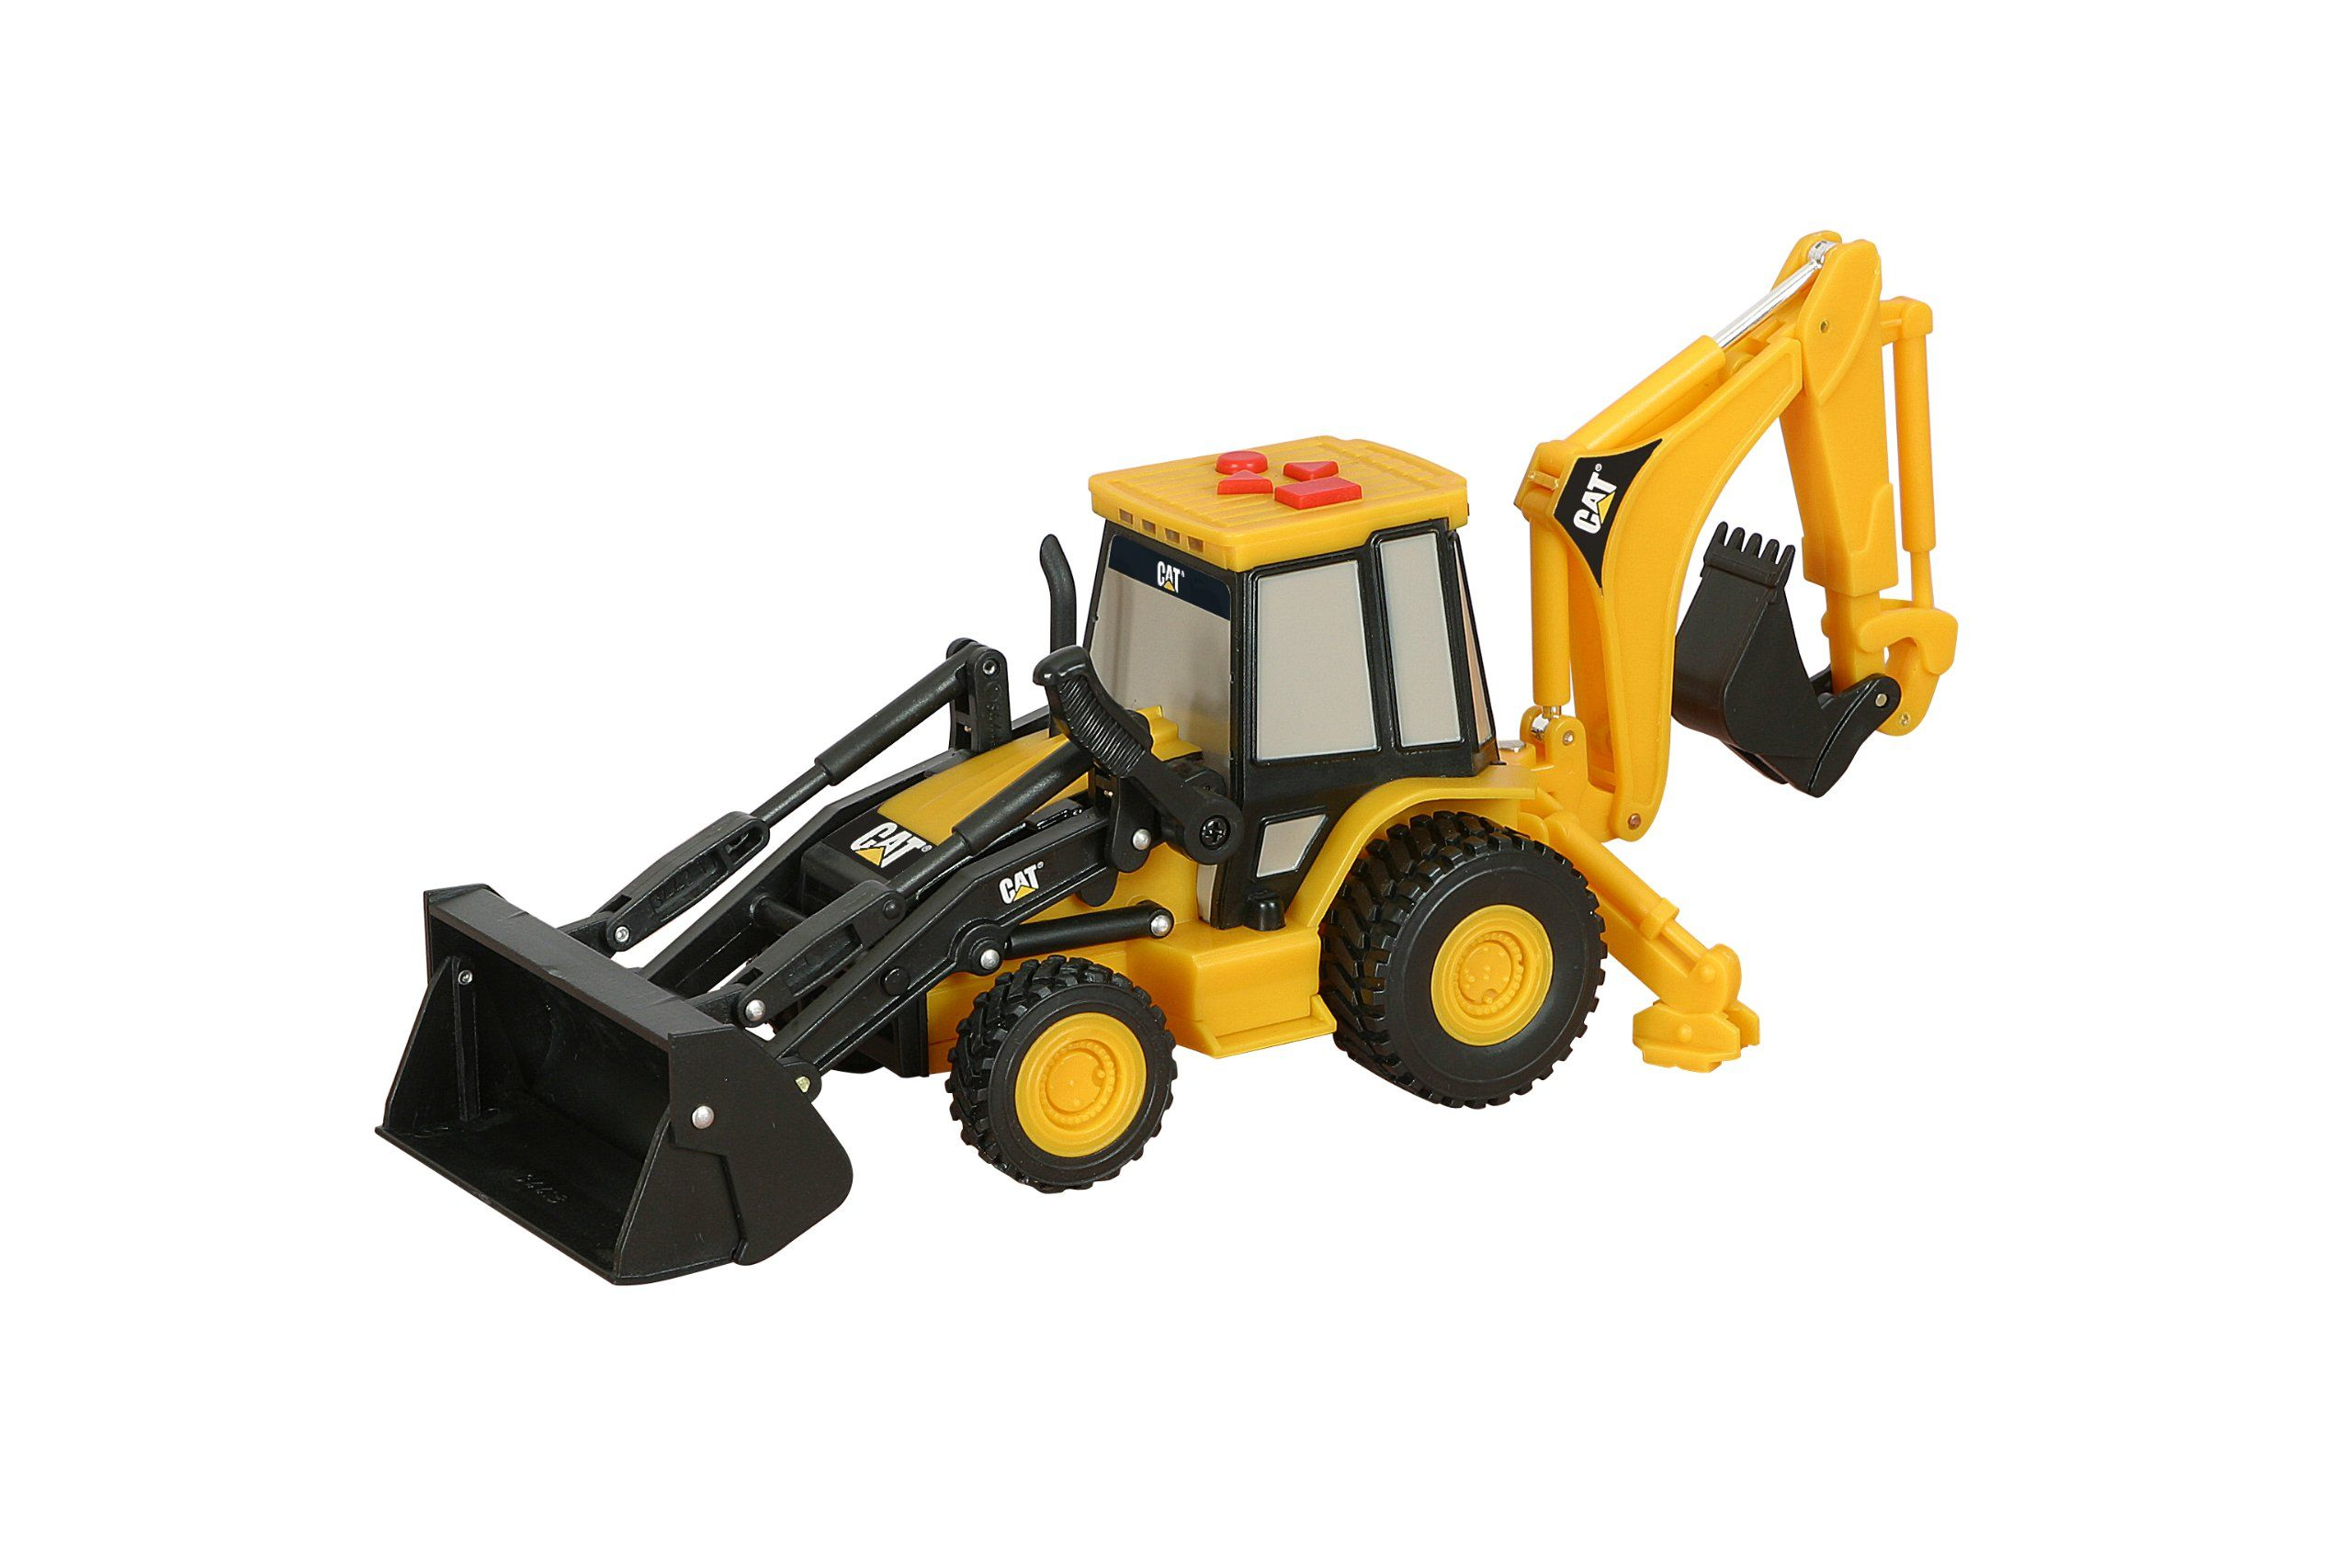 Digger Toy Toy State Caterpillar Big Builder Machines 34624 Toy Backhoe